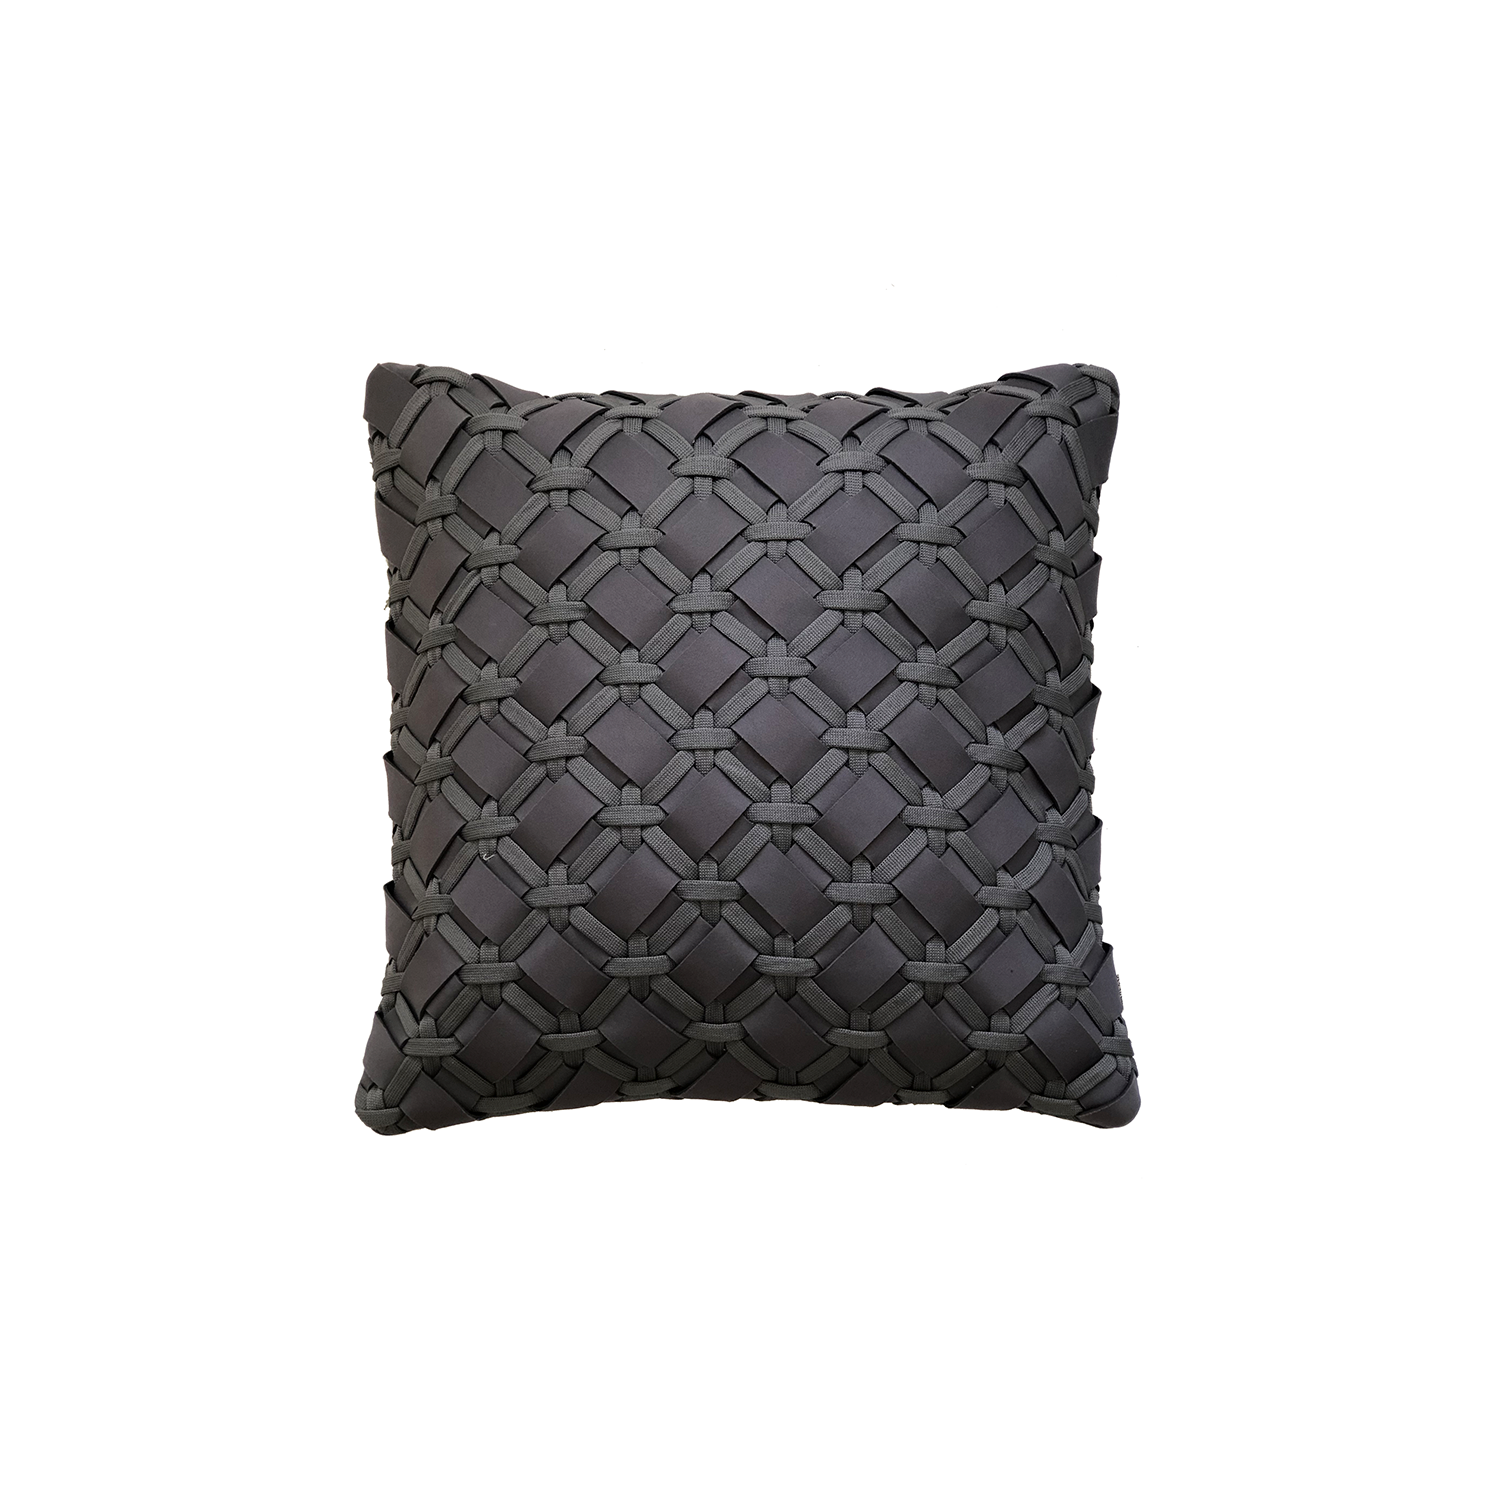 Geometrico Neo Cushion Square - The Geometrico Neo Cushion is carefully knitted within a trained community of women that found in their craft a way to provide for their families. The outdoor collection is made with synthetic fibres, resistant to weather exposure. The use of neoprene brings comfort and technology to the cushions.  The front panel is in neoprene combined with hand woven nautical cord, made in Brazil.  The inner cushion is in Hollow Fibre, made in the UK.  Please enquire for more information and see colour chart for reference.  | Matter of Stuff